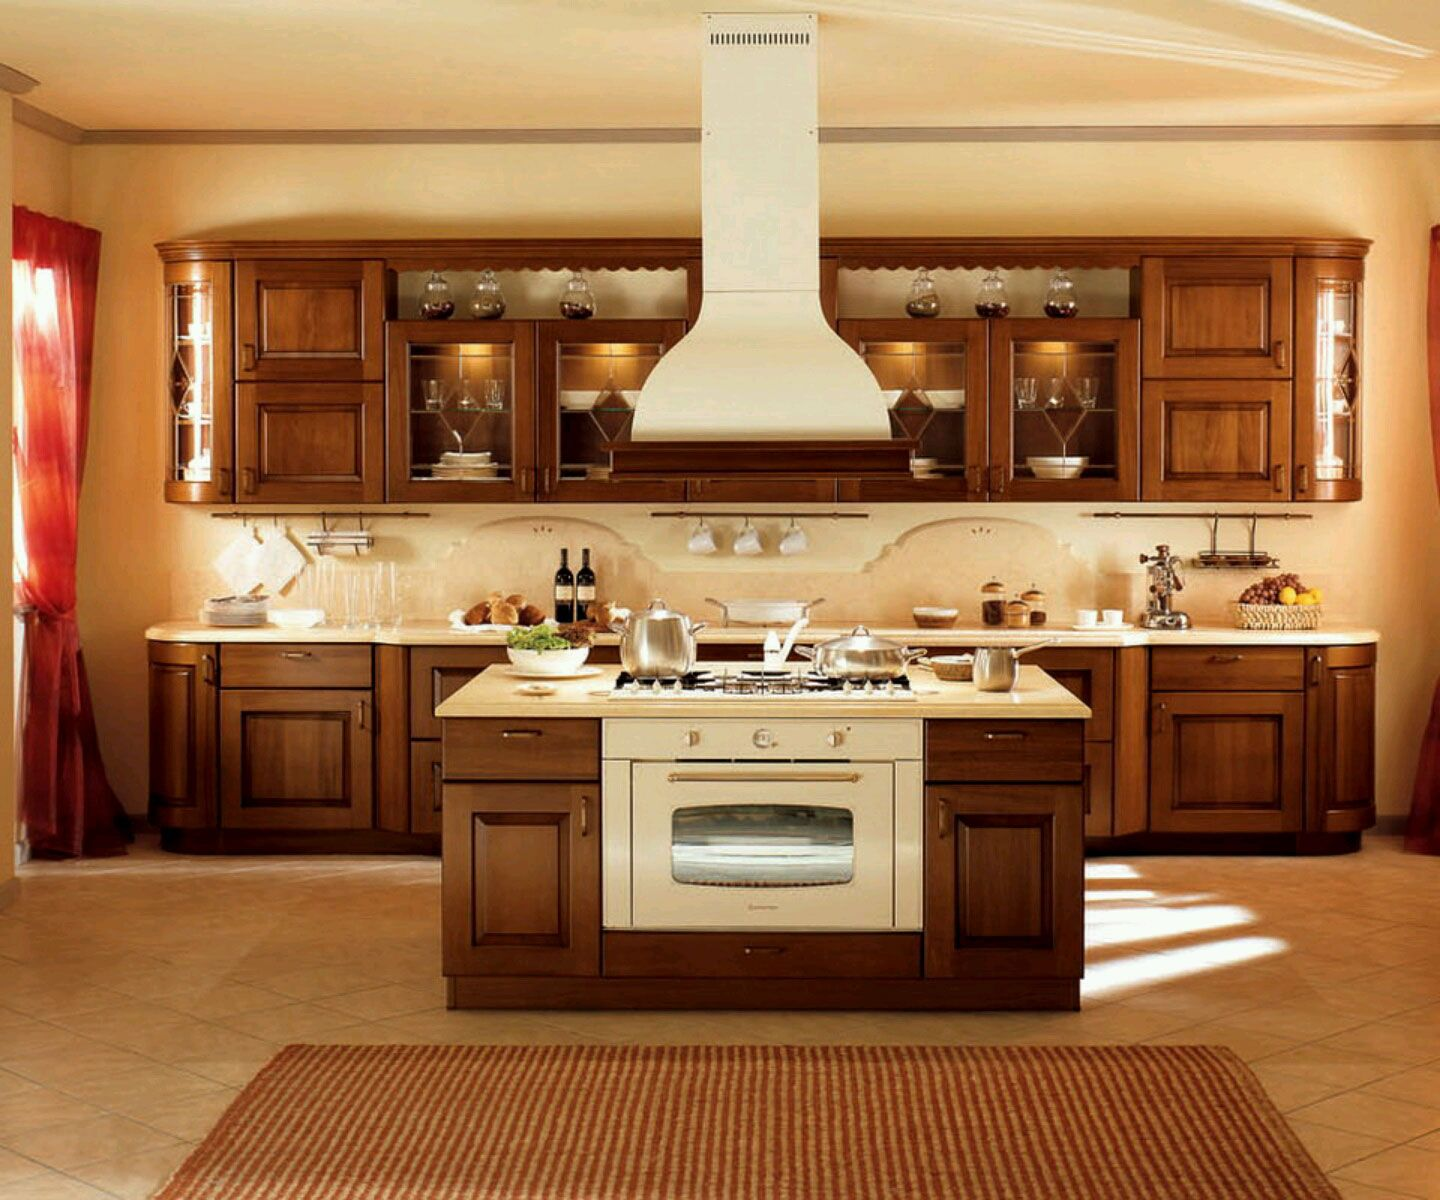 Kitchen Island Design With Oven Compact Island With Cooktop And Oven Ideas With Rectangular Rug Also